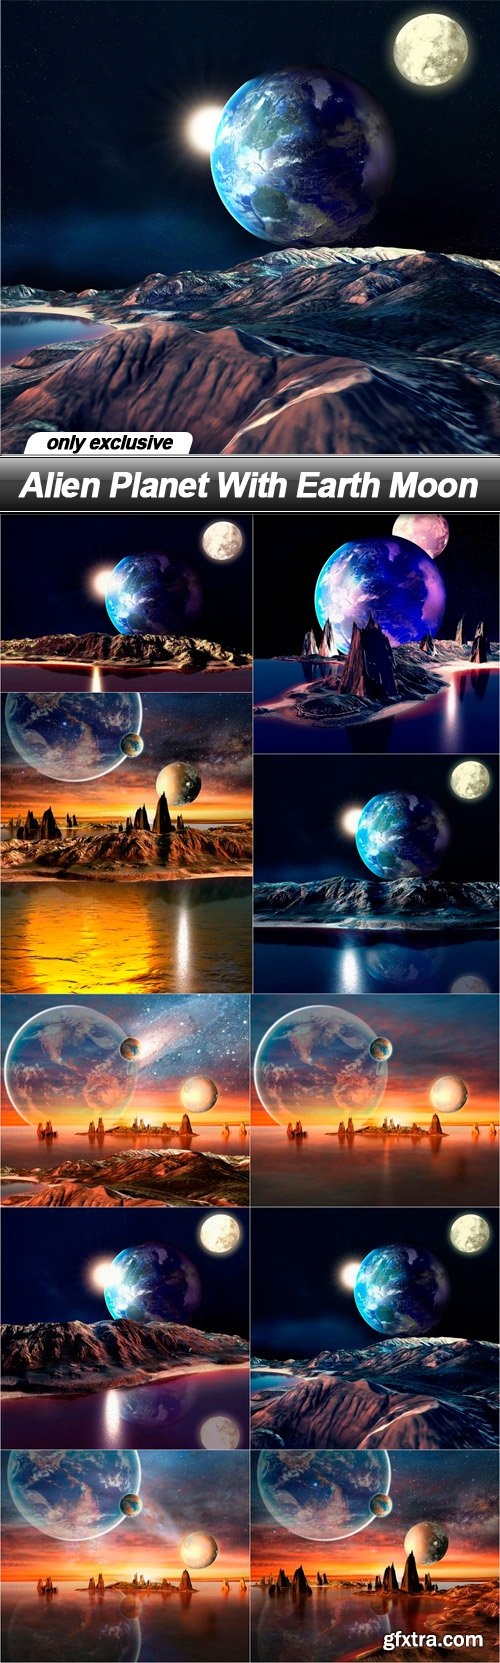 Alien Planet With Earth Moon - 10 UHQ JPEG